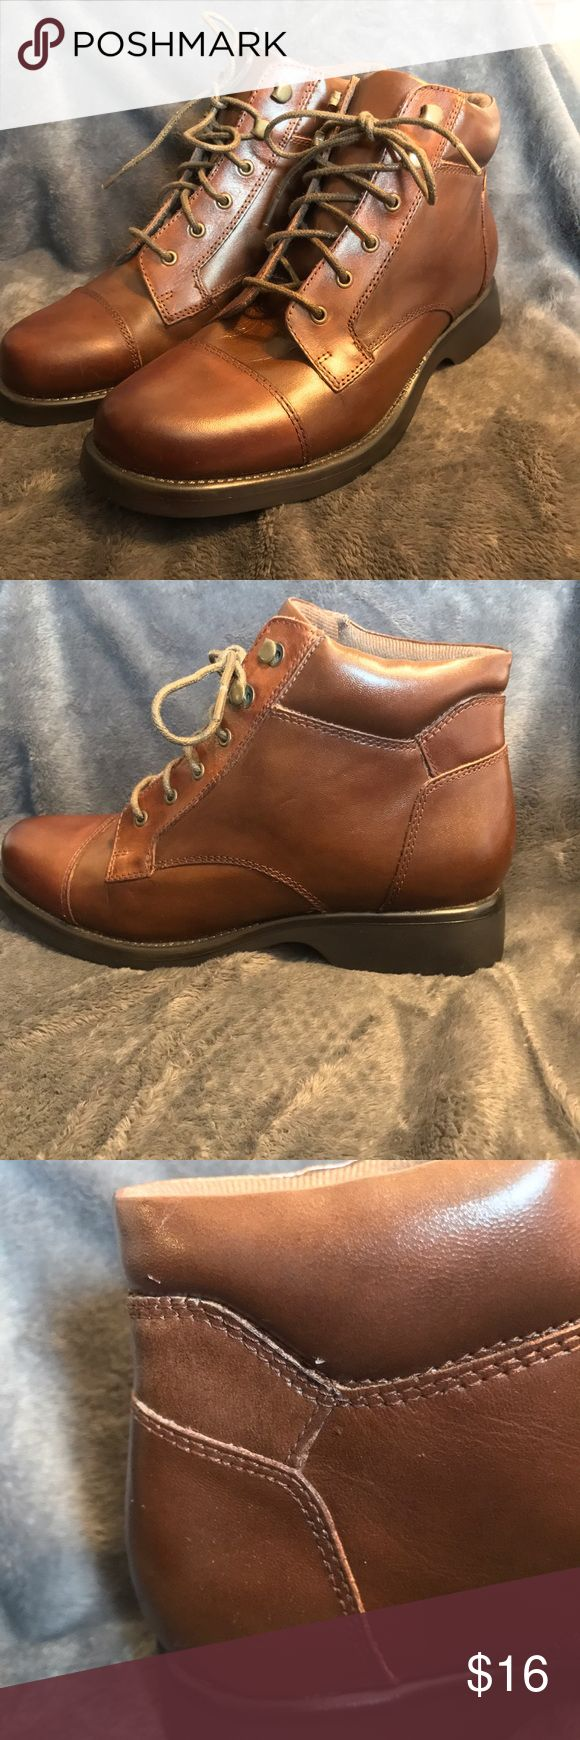 EARTH SHOE GELRON 2000 BROWN LEATHER ANKLE BOOTS EARTH SHOE GELRON 2000 WOMEN'S BROWN LEATHER ANKLE BOOTS SIZE 8.5 SHOES SENECA EURO SIZE: 40.5 CONDITION: NEVER BEEN WORN BUT HAVE SOME SURFACE SCRATCHES FROM SHELF WEAR earth shoe Shoes Ankle Boots & Booties